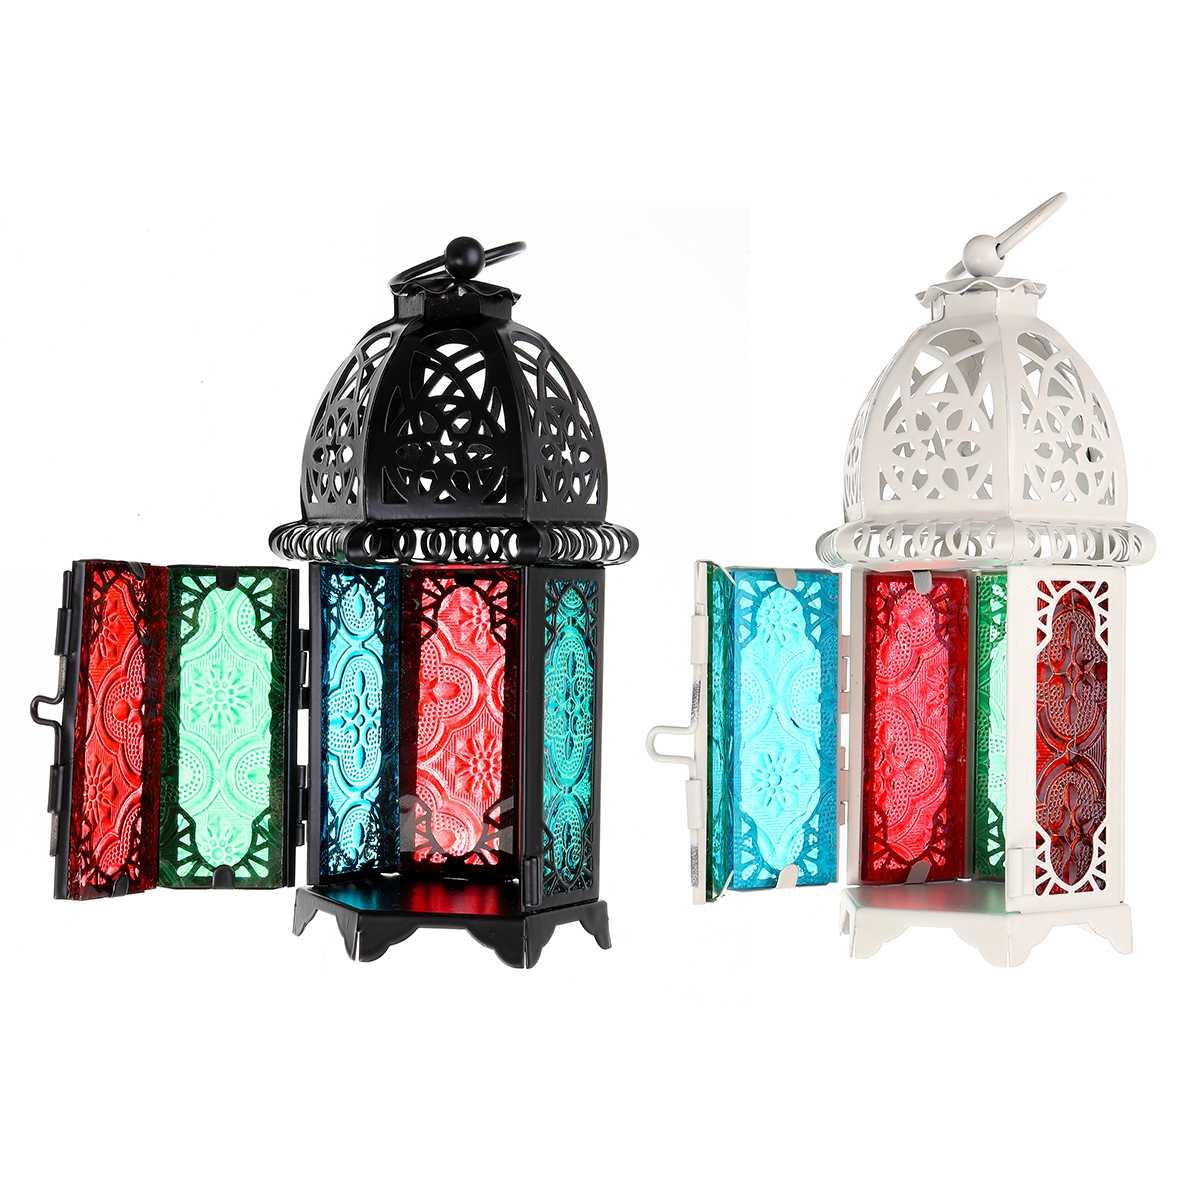 16.5x7cm Vintage glass moroccan decoration flashlights hollow candlelight chandelier windproof candle holder for home decoration wedding